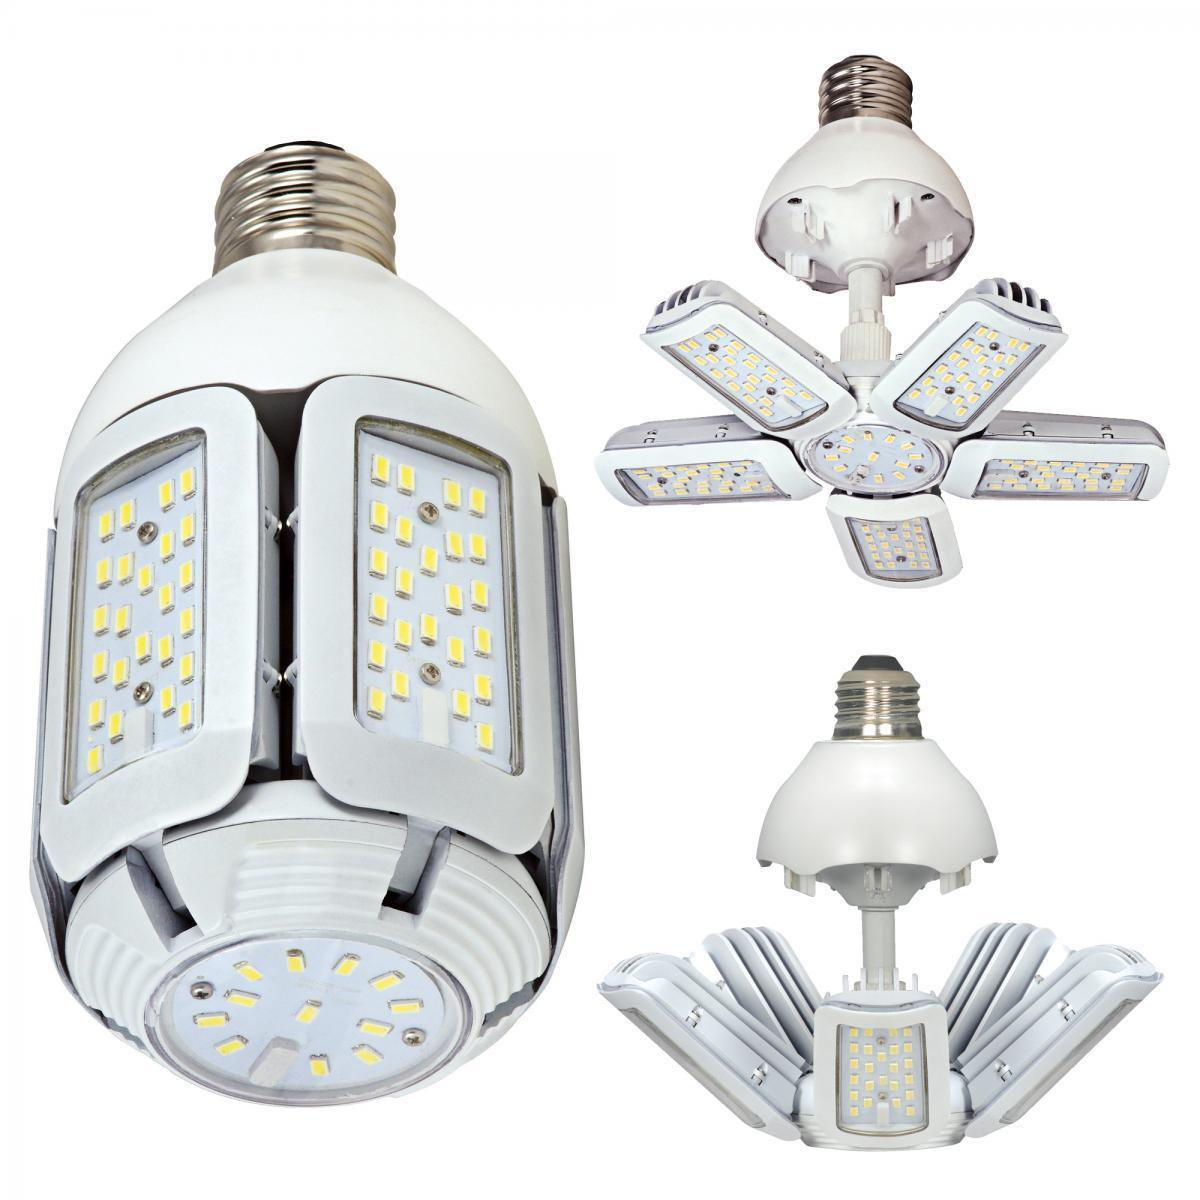 SATCO 40W - LED HID Replacement - 2700K - Mogul Base - Ad...